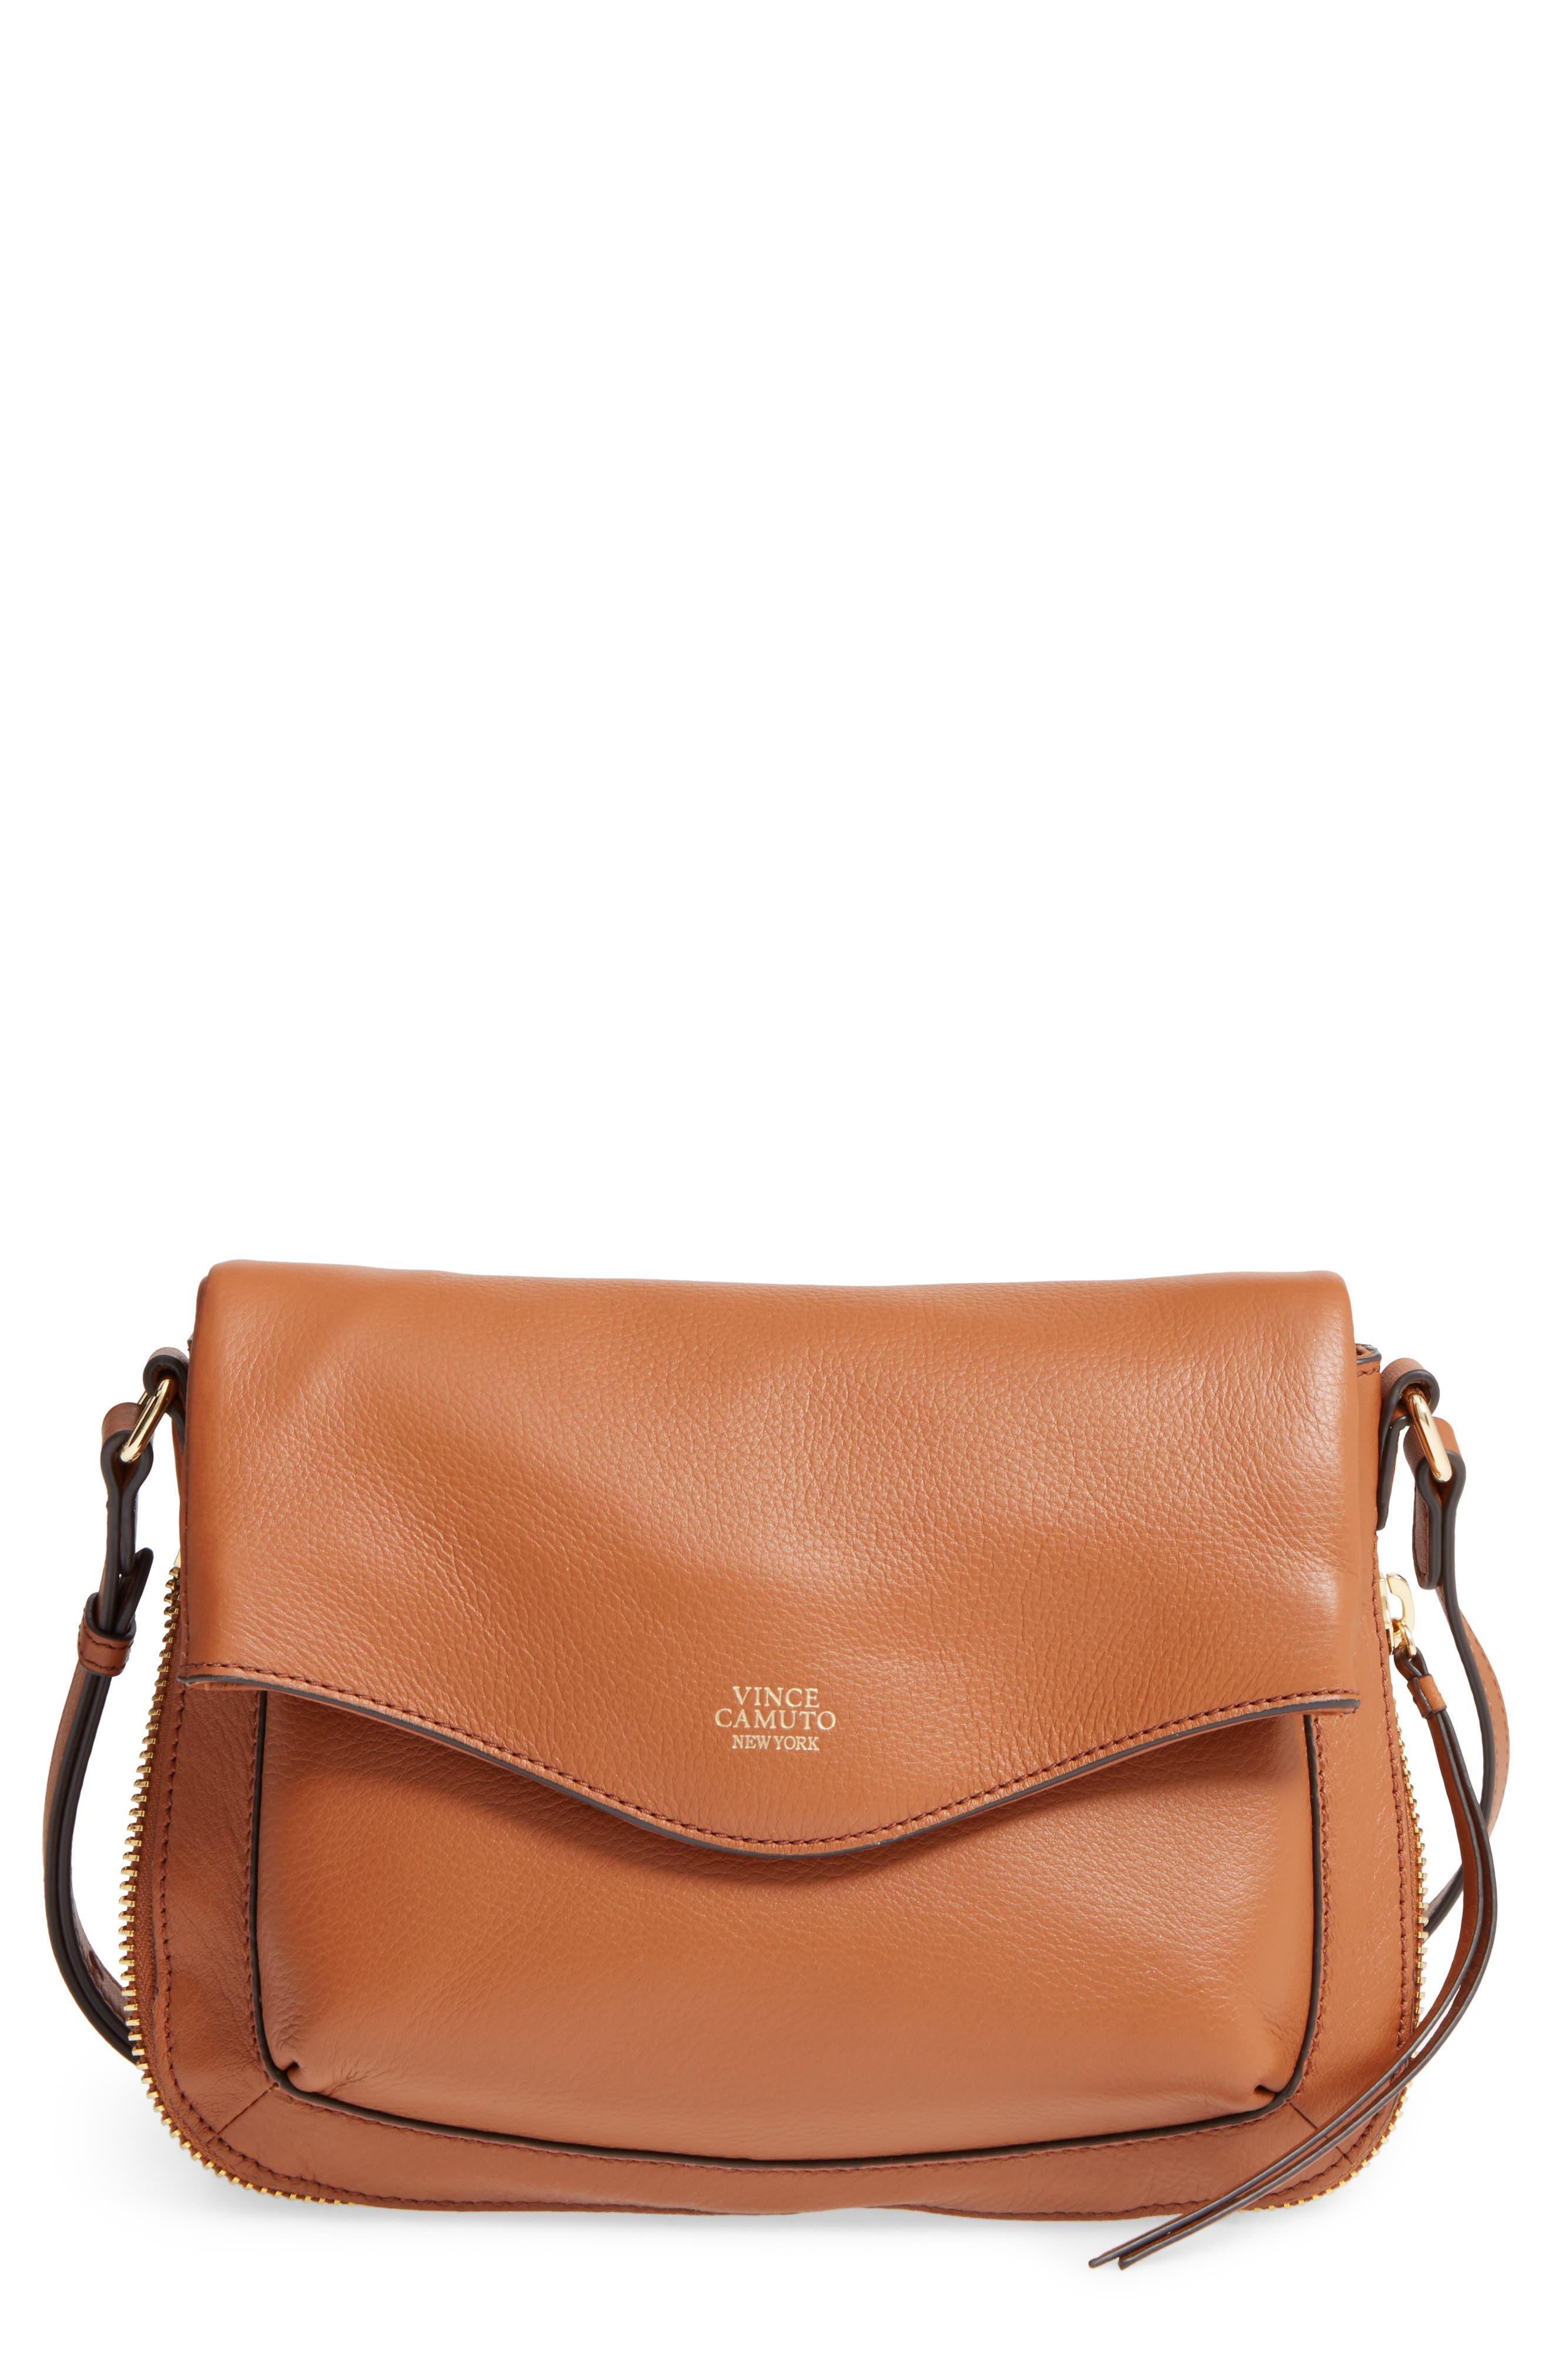 Alternate Image 1 Selected - Vince Camuto Dafni Leather Crossbody (Nordstrom Exclusive)